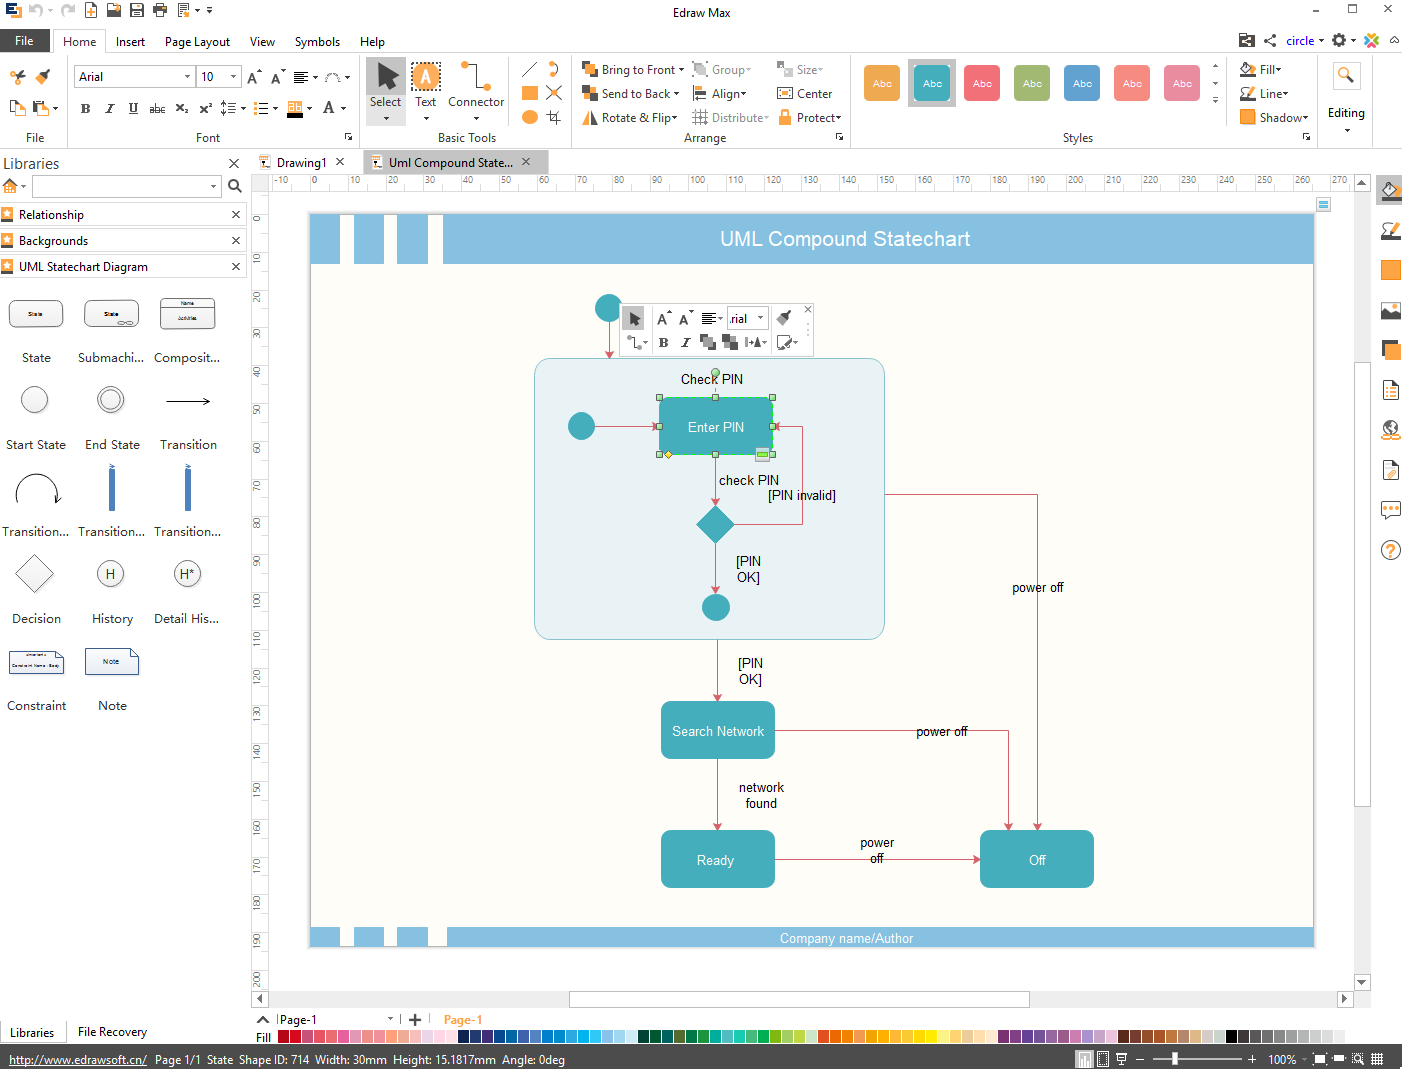 Which of these software design tools, LucidChart, Edraw Max